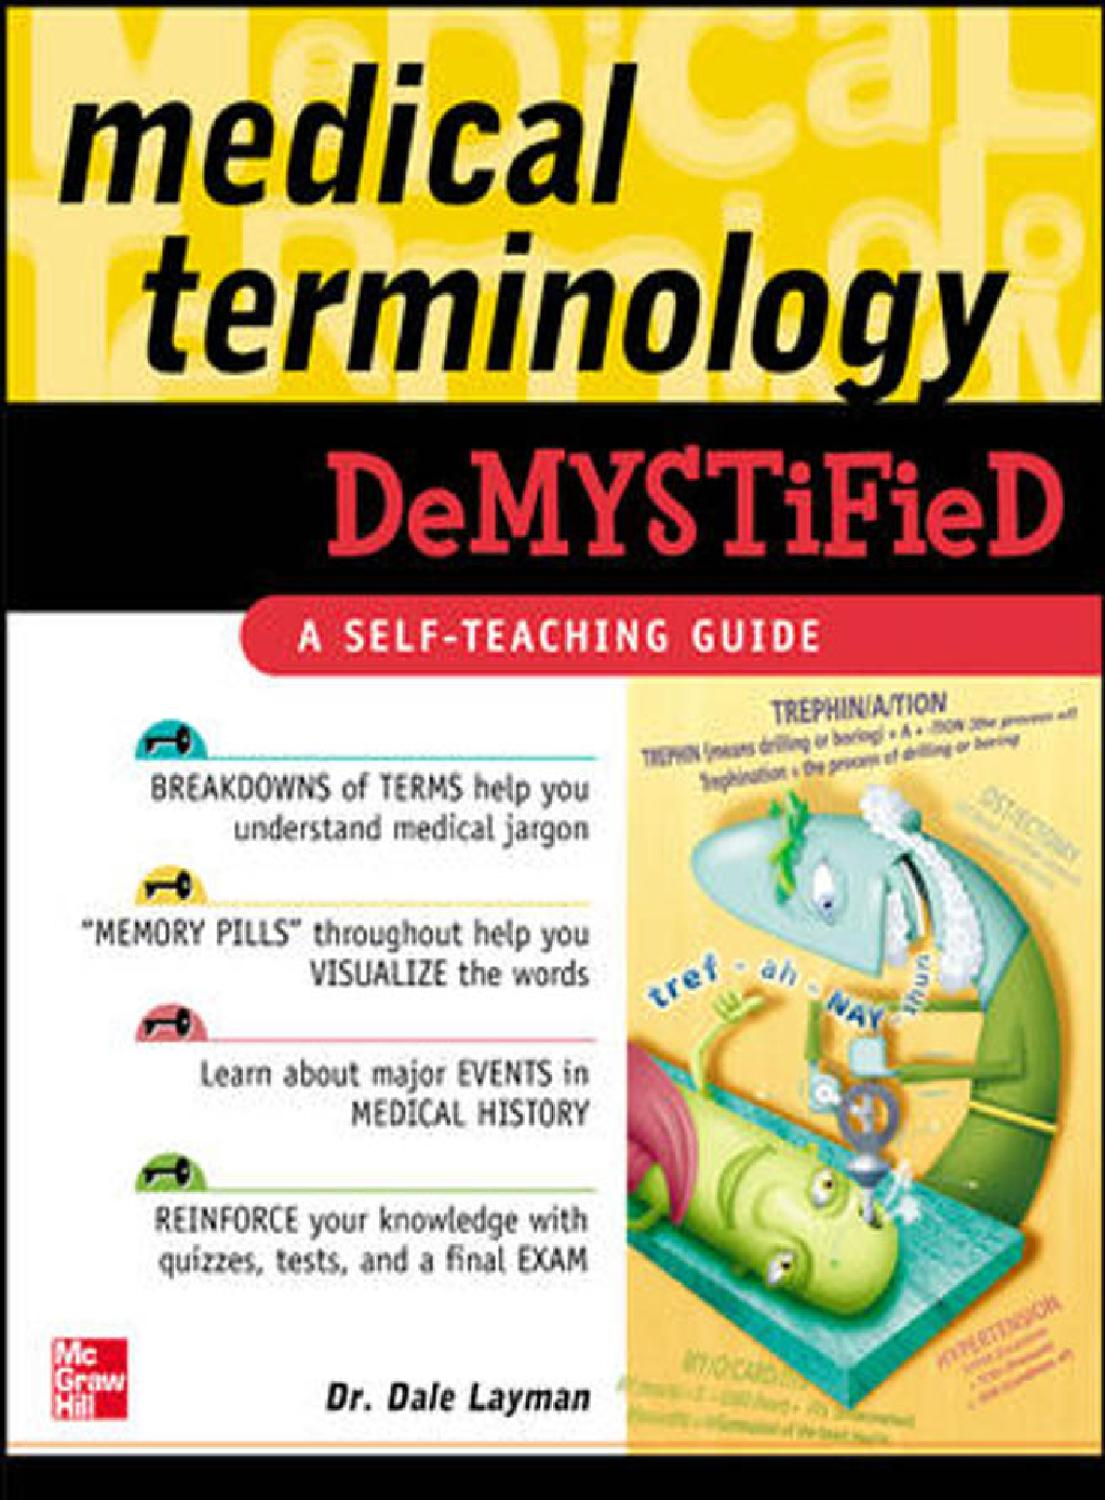 Medical terminology demystified a self teaching guide by hem medical terminology demystified a self teaching guide by hem sovanda issuu biocorpaavc